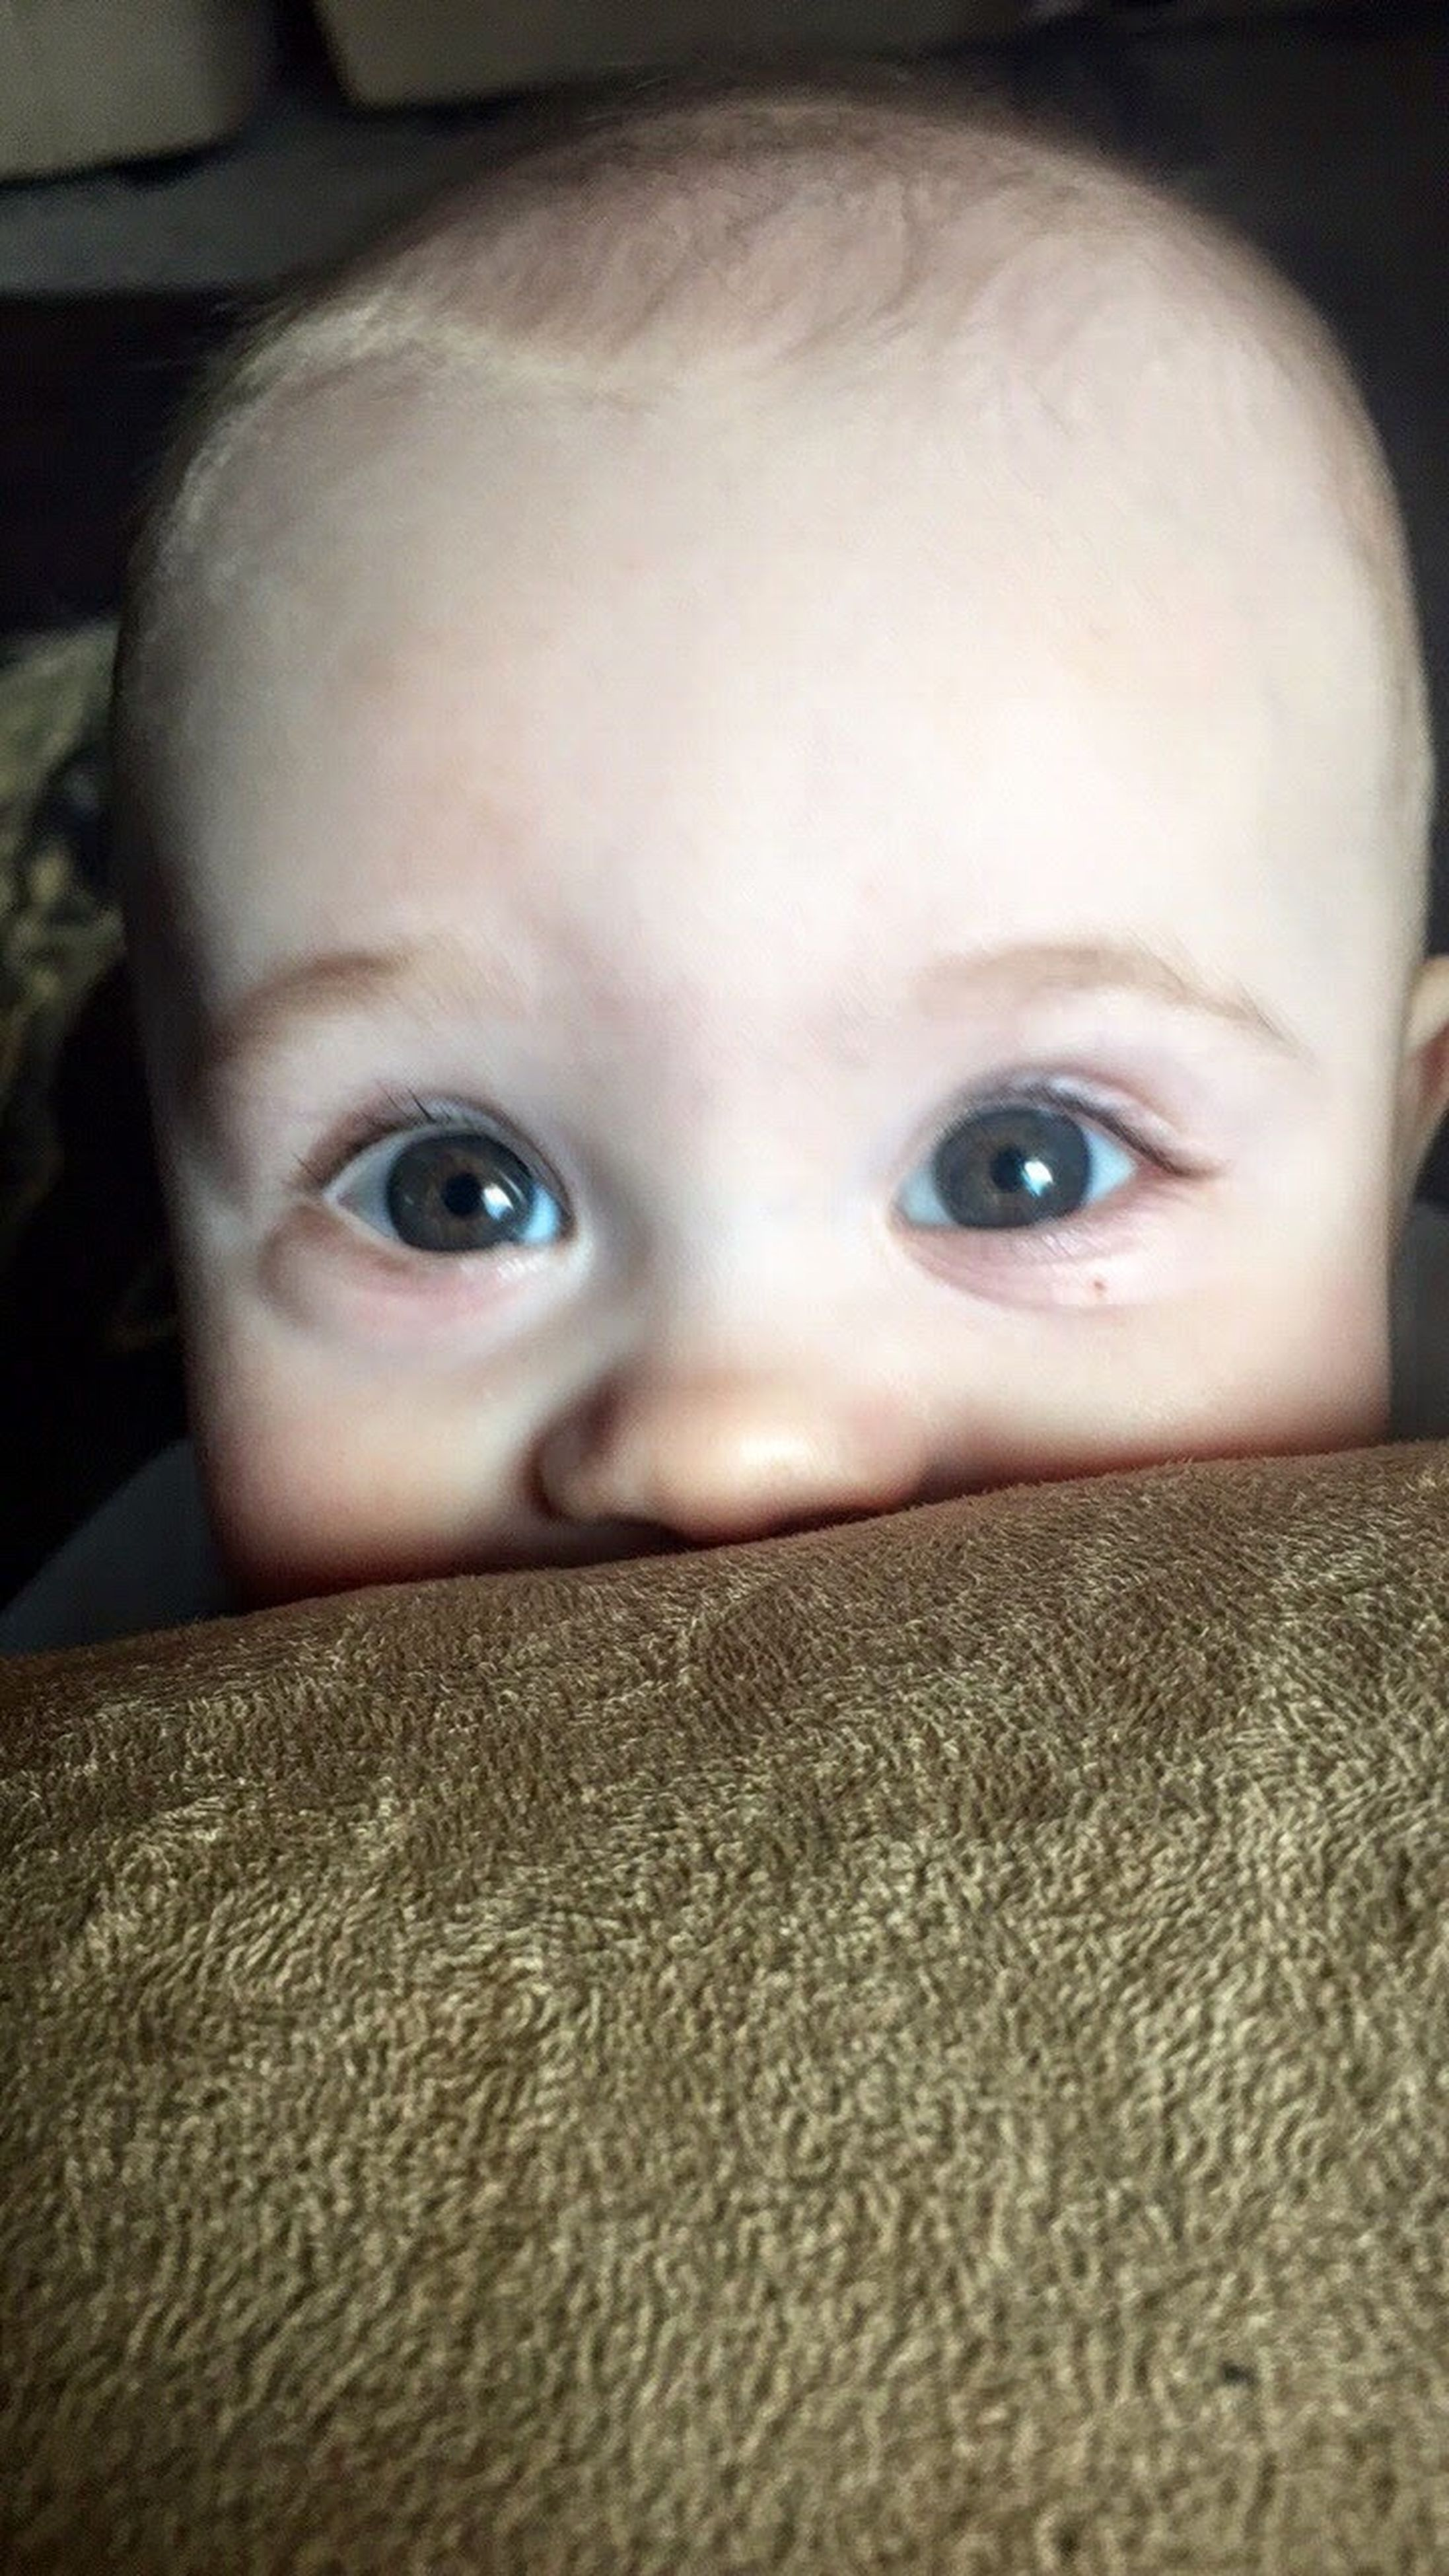 looking at camera, portrait, human eye, innocence, cute, blue eyes, human face, headshot, childhood, baby, toddler, real people, close-up, one person, indoors, babyhood, smiling, people, eye color, day, human body part